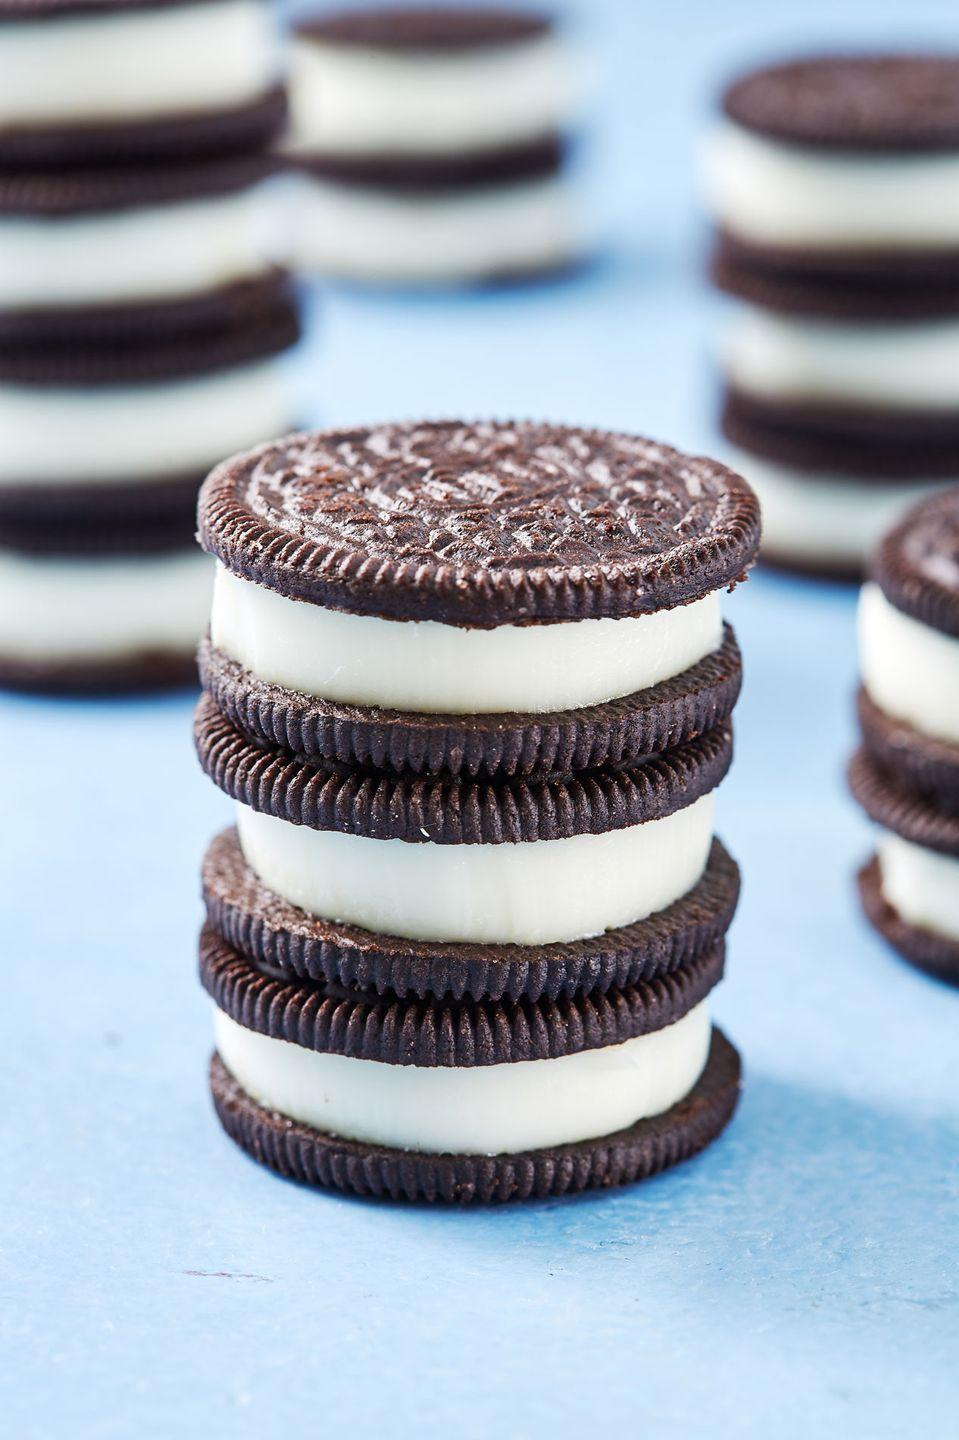 """<p>Looks like a cookie, tastes like a shot 😛</p><p>Get the recipe from <a href=""""https://www.delish.com/cooking/recipe-ideas/a19745937/oreo-jell-o-shots-recipe/"""" rel=""""nofollow noopener"""" target=""""_blank"""" data-ylk=""""slk:Delish"""" class=""""link rapid-noclick-resp"""">Delish</a>.</p>"""